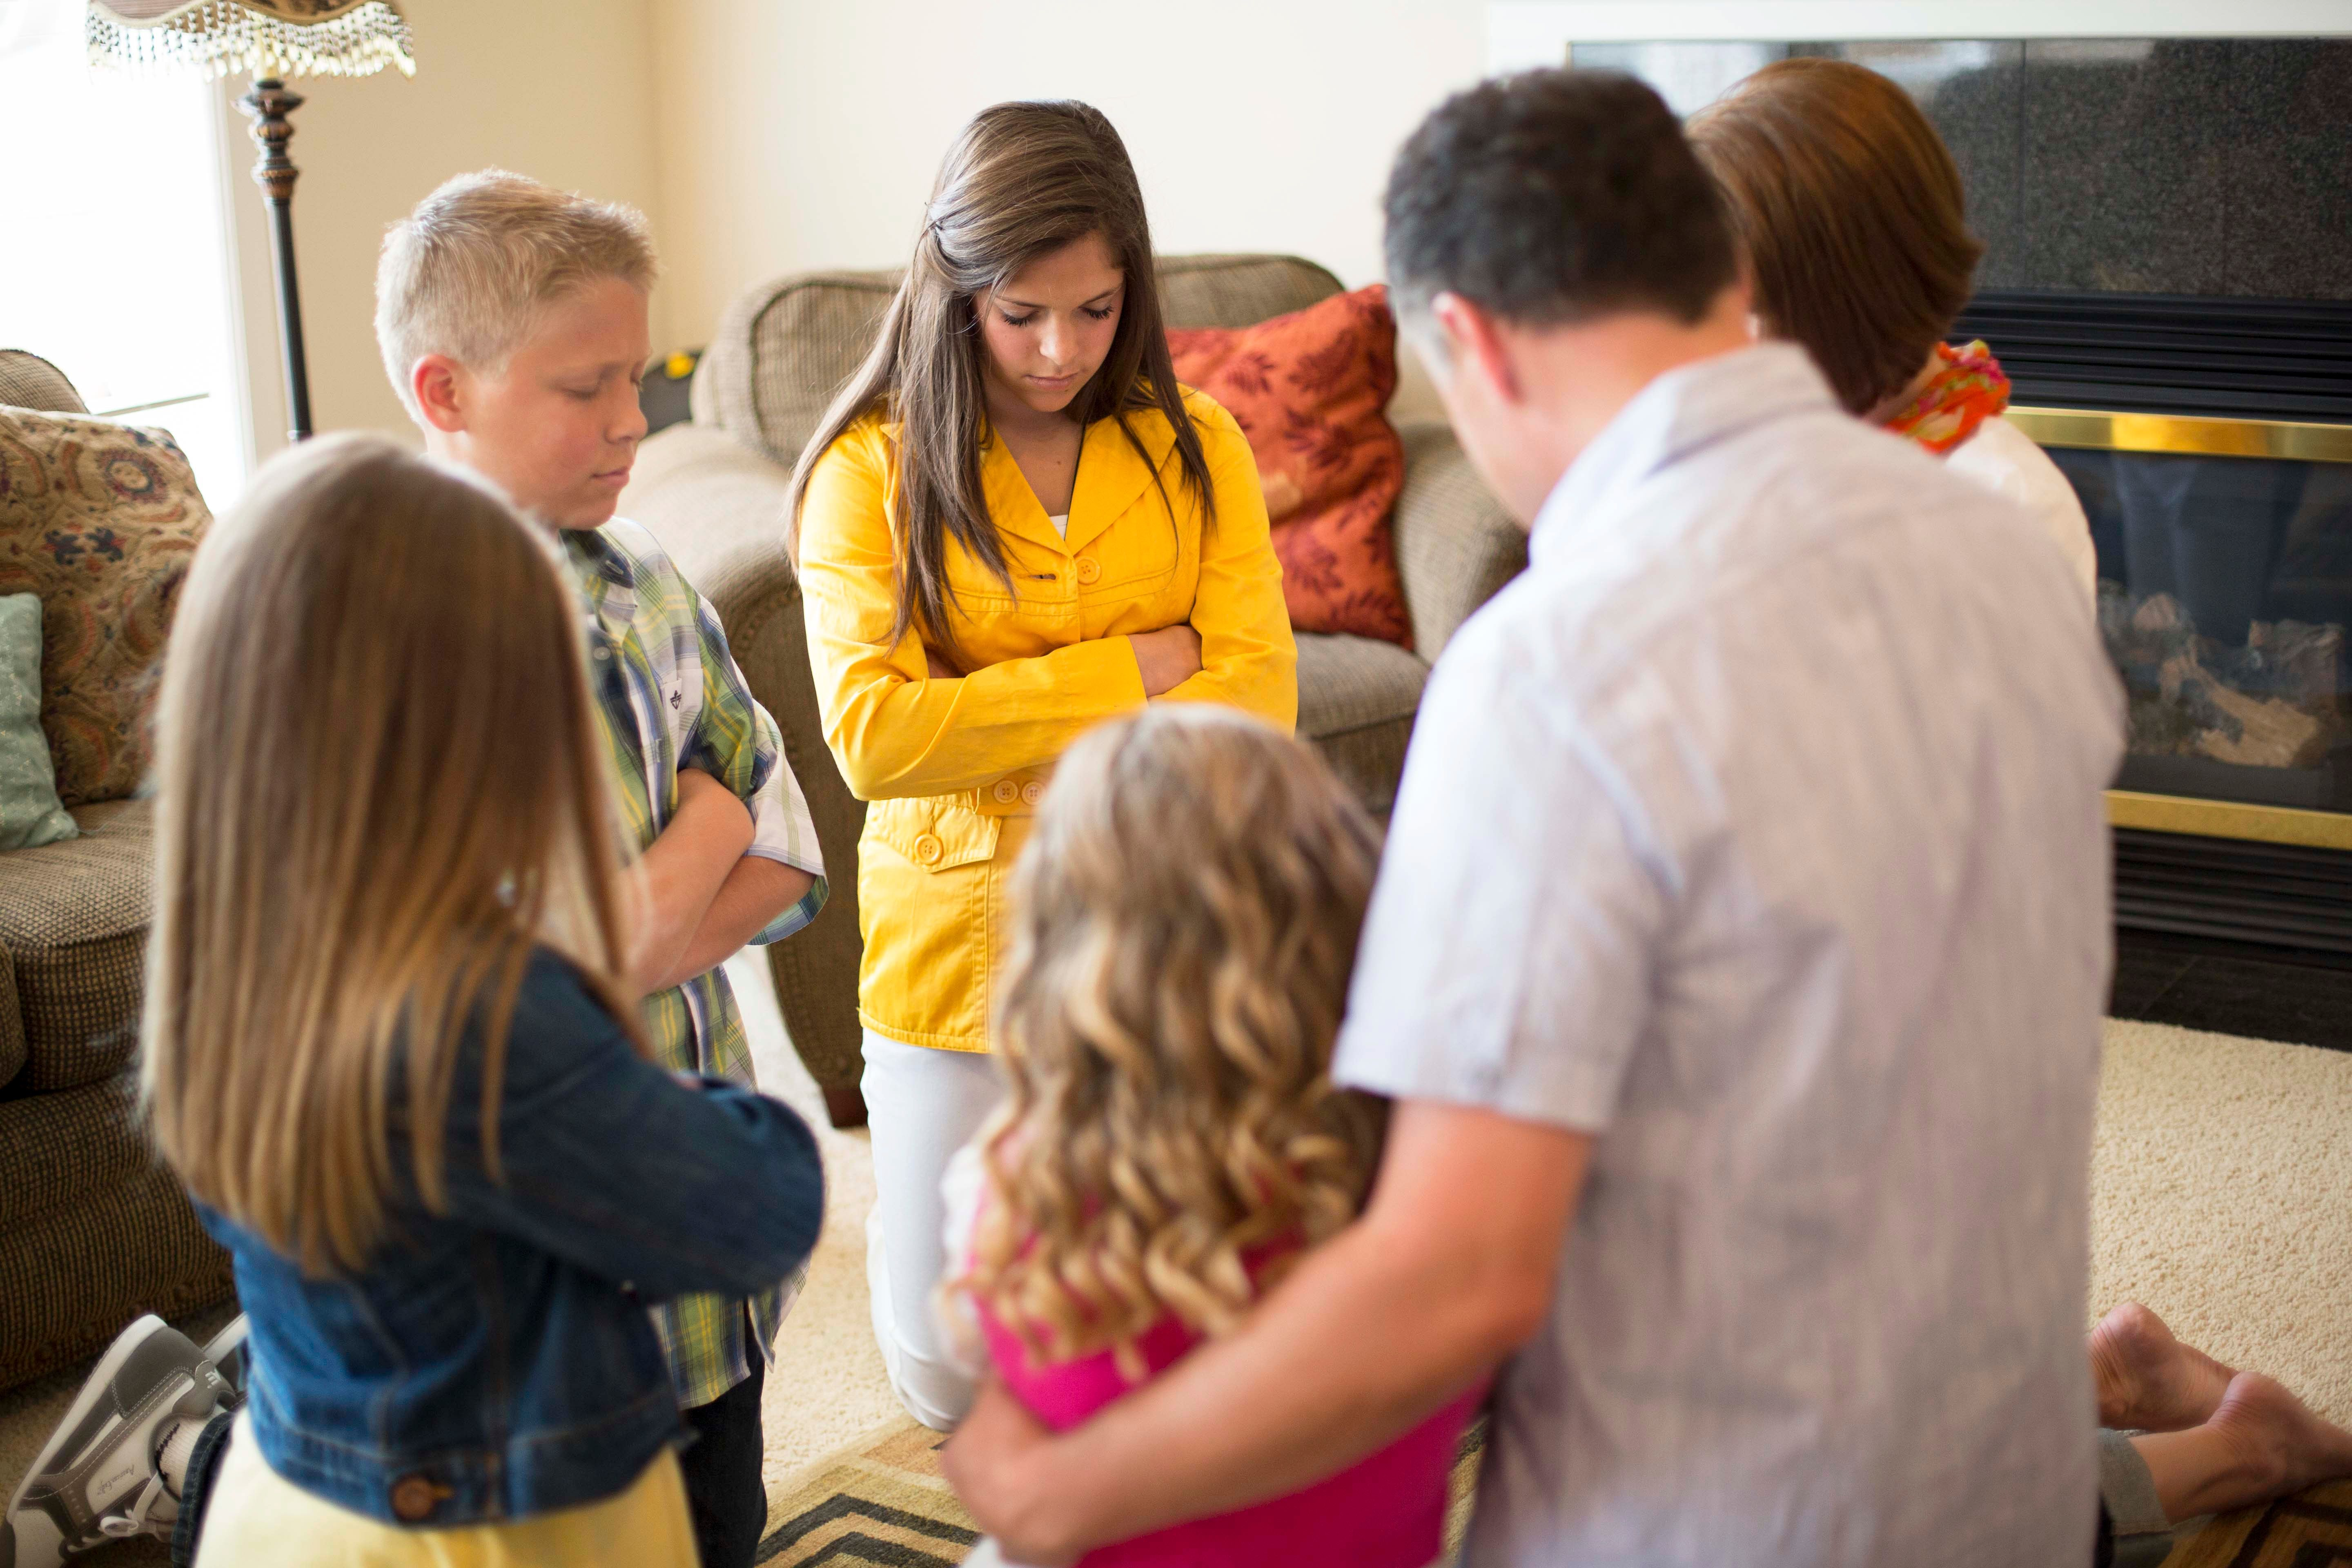 A family kneeling in the living room to pray together.